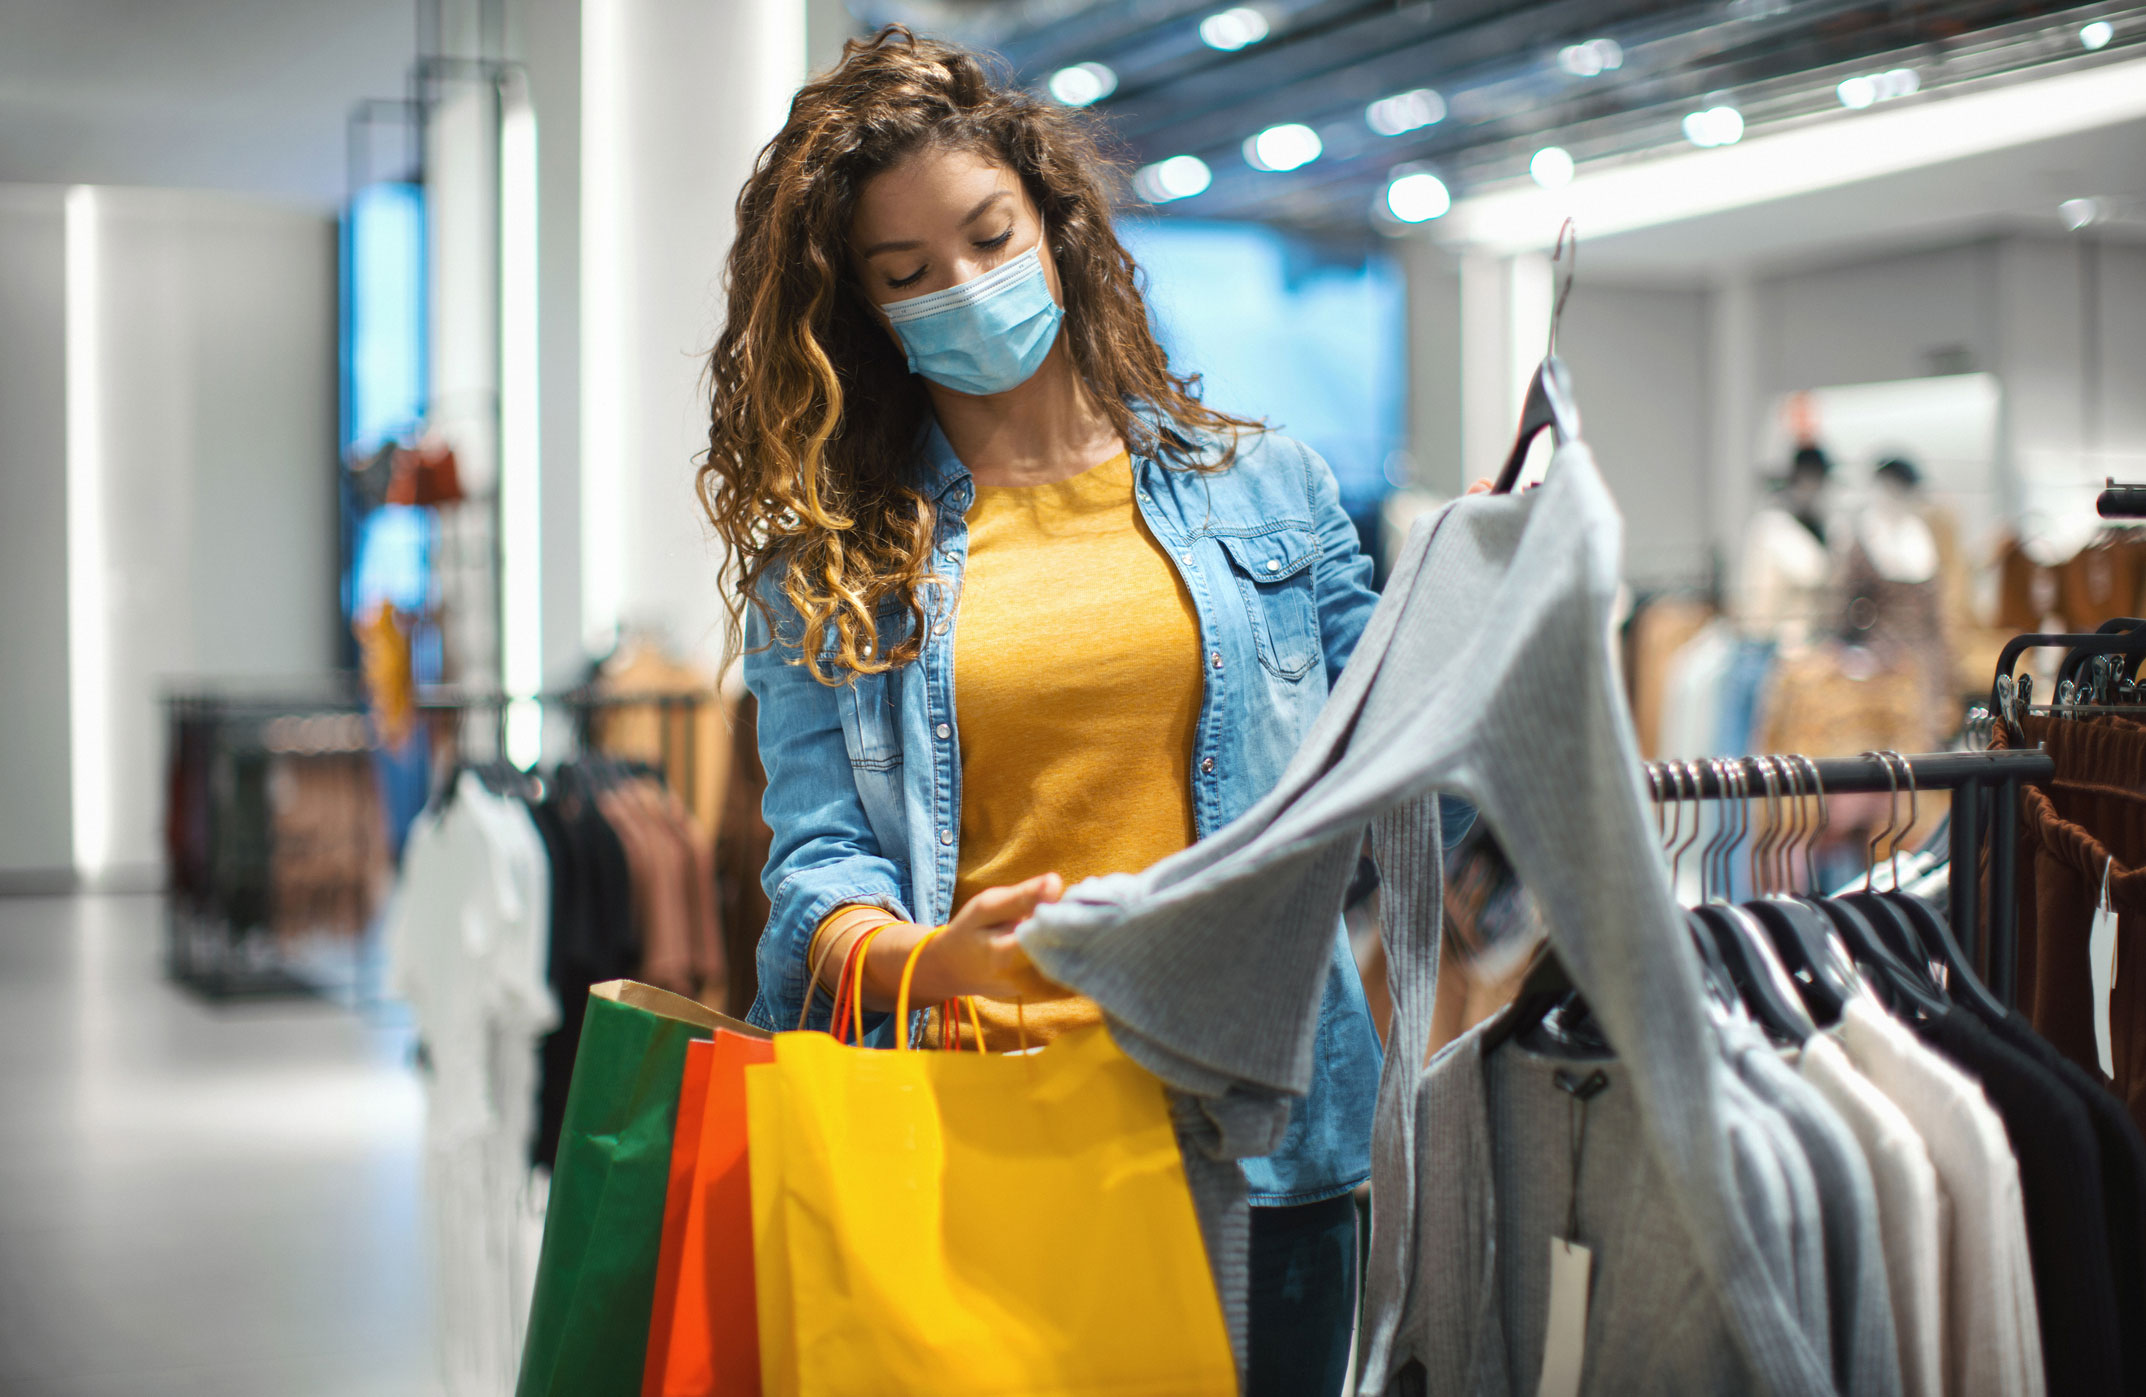 Stop Wasting Money: 5 Tips for Every Clothing Shopping Trip